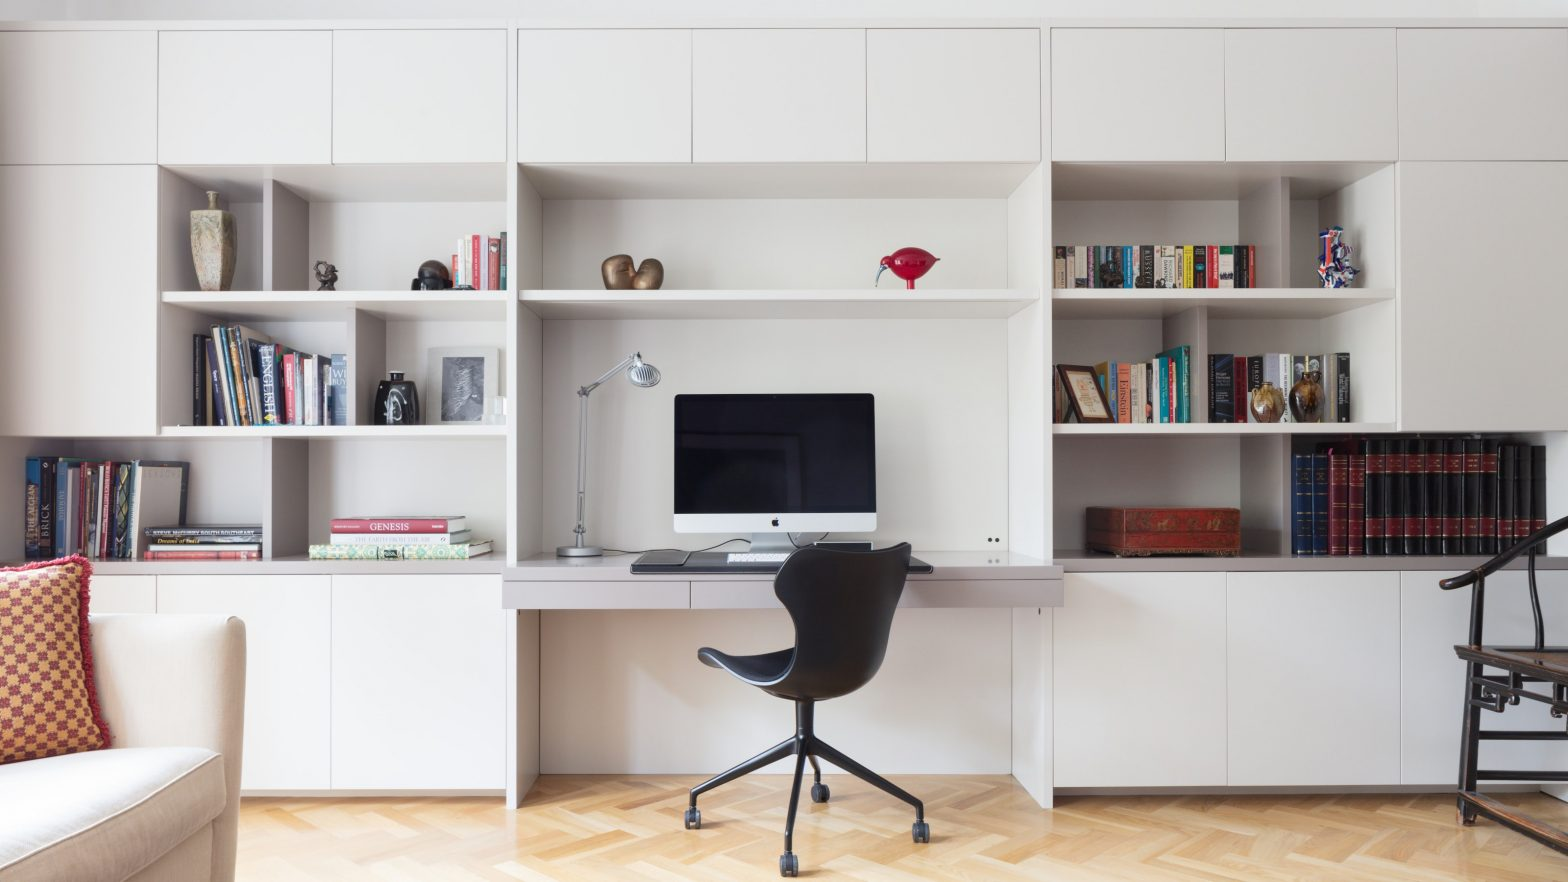 How Do You Buy Inexpensive Room Chairs Smartly?